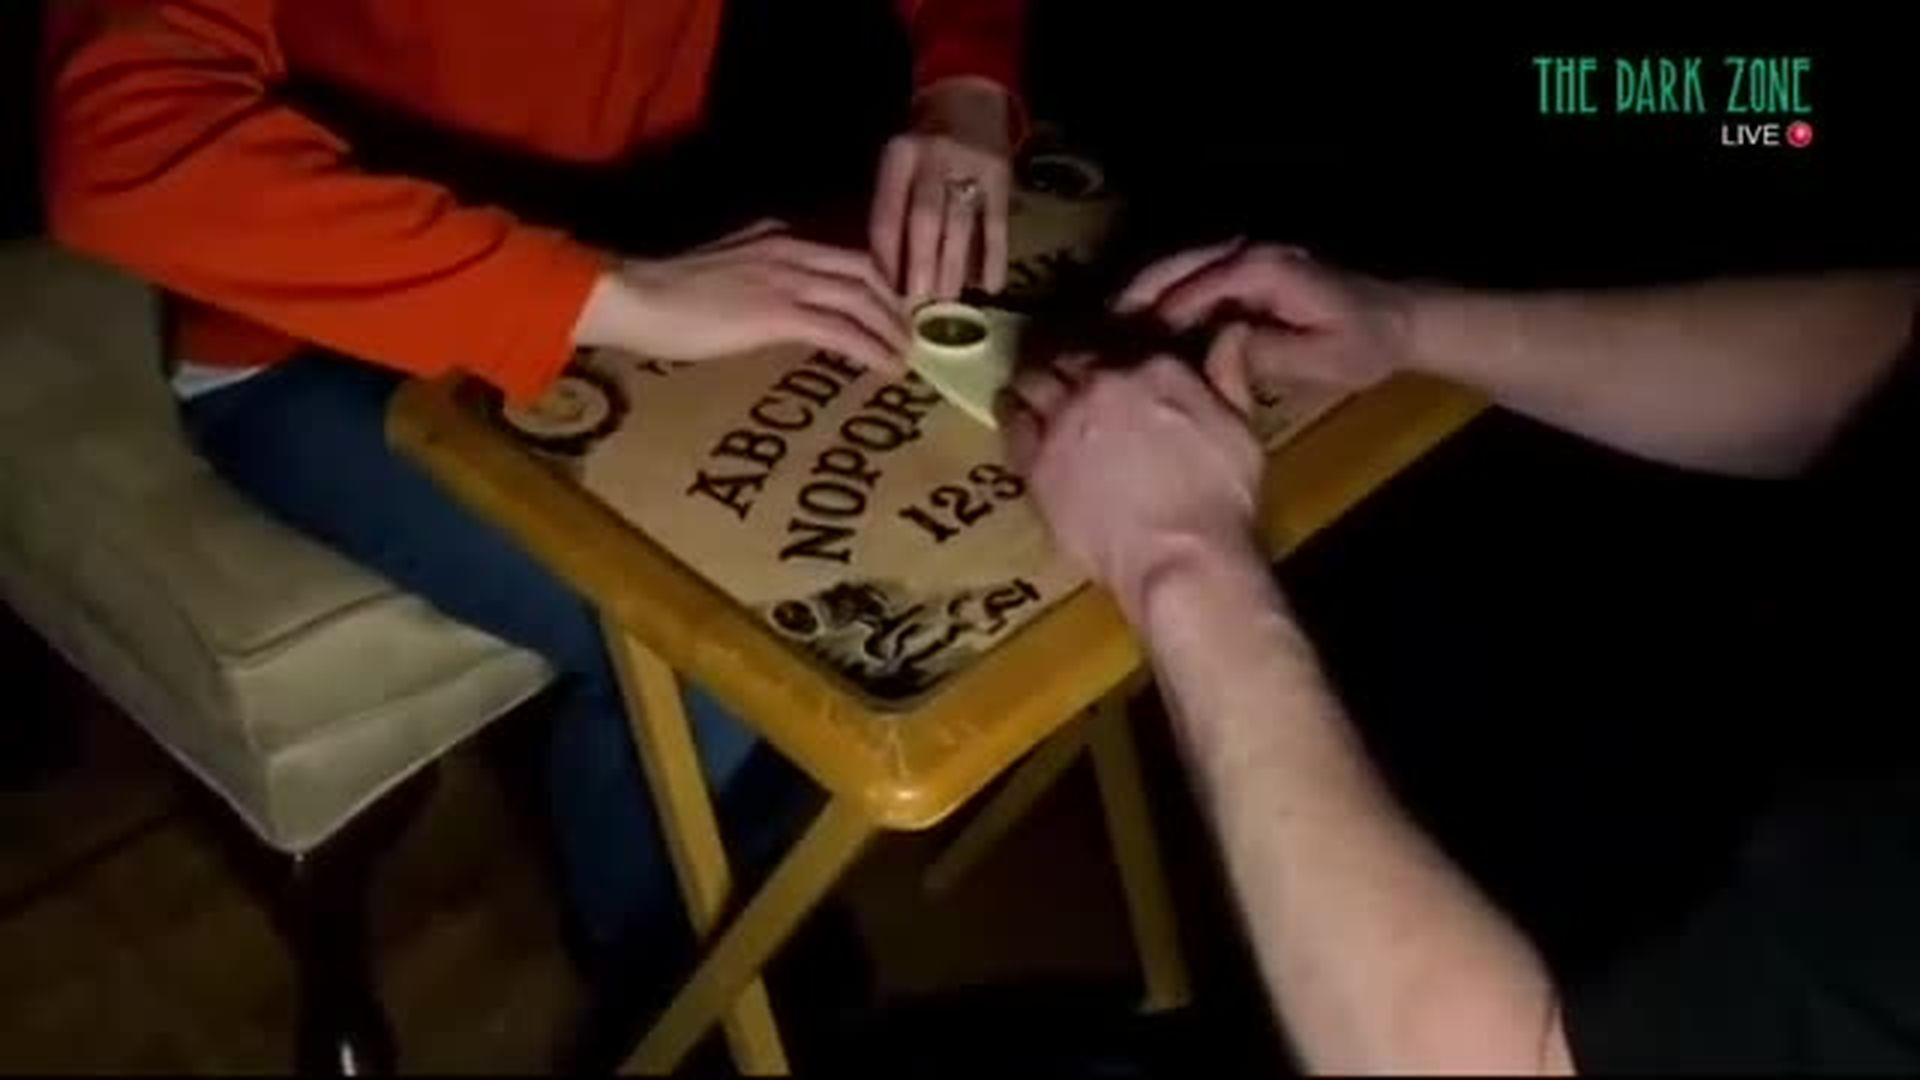 Ouija Session in Seance Room